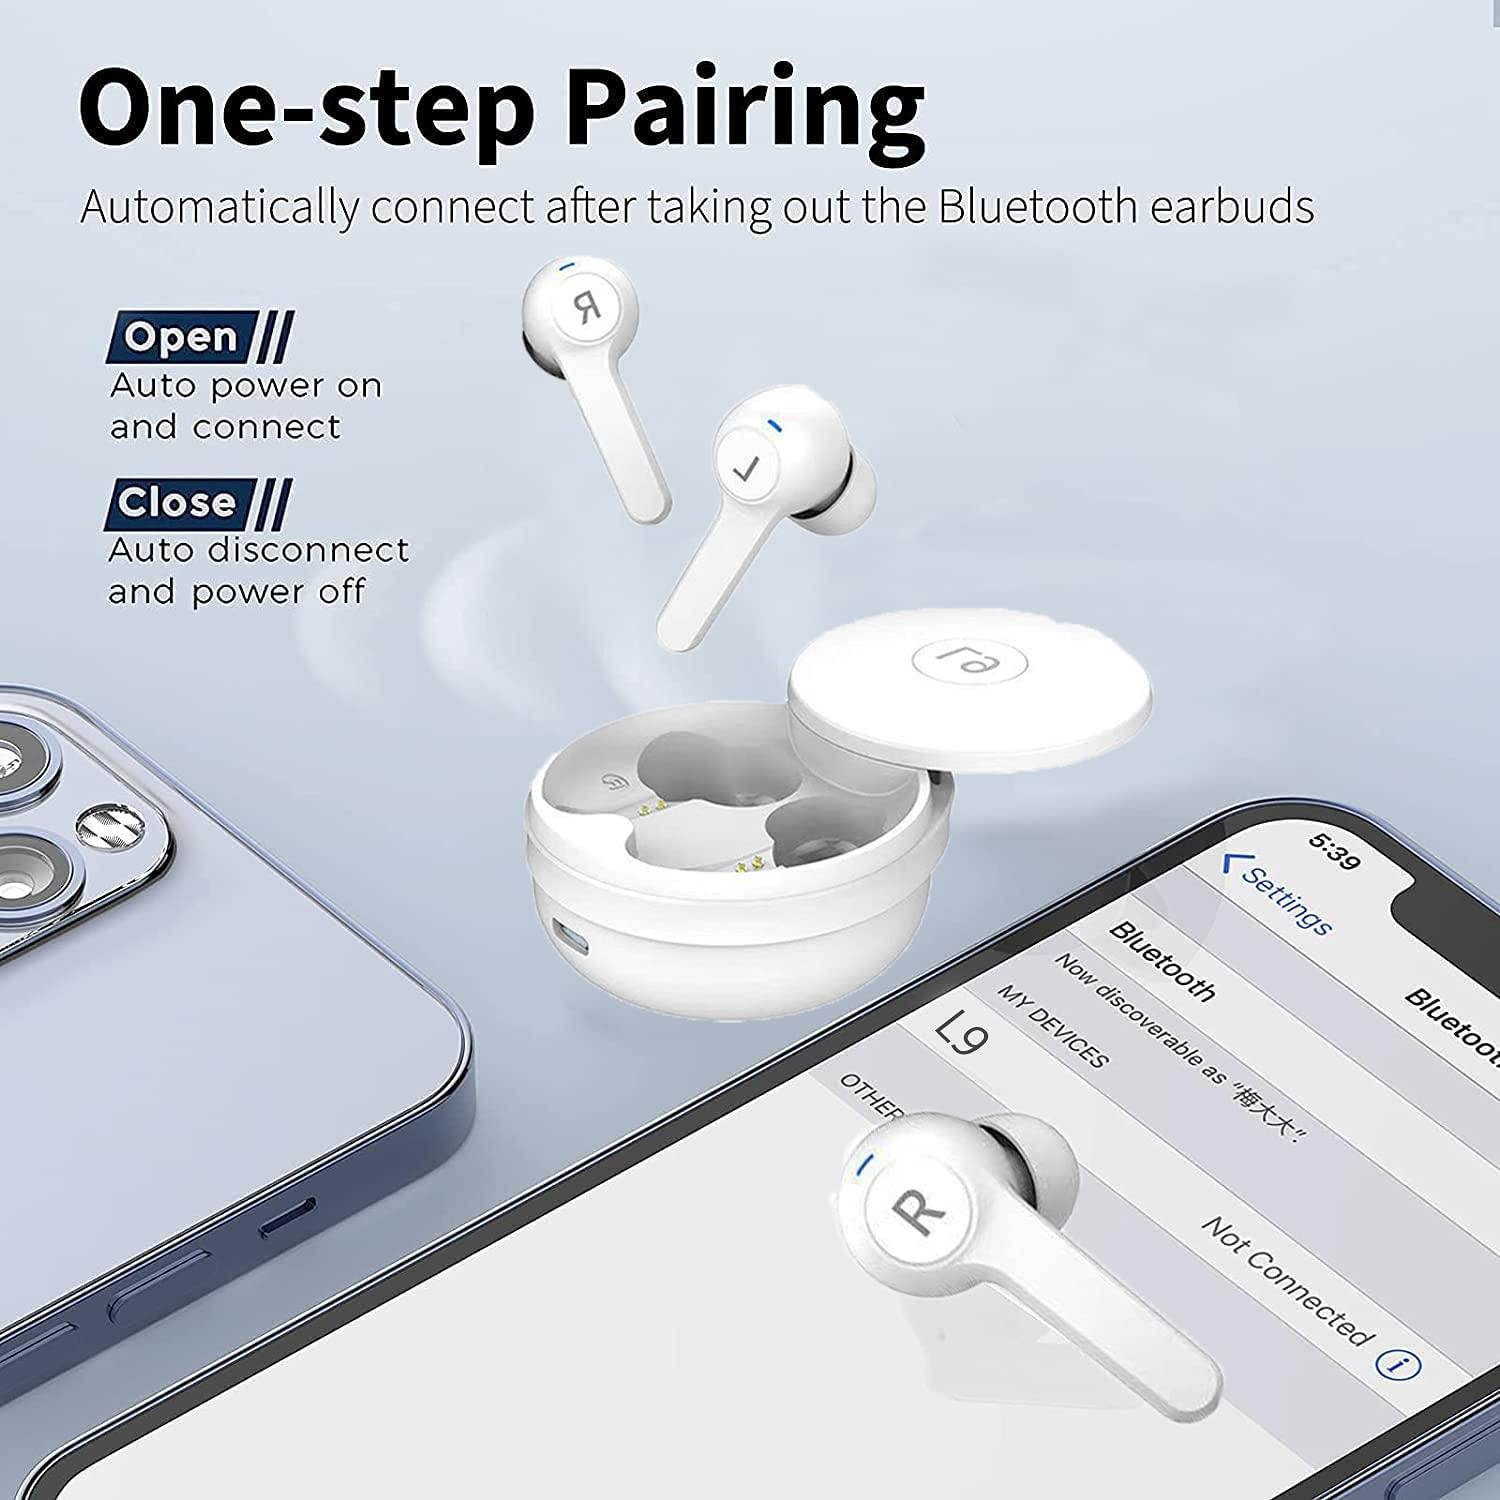 Wireless Headset Bluetooth 5.0 Noise Reduction IPX5 Waterproof Headset Sliding Cover Portable Charging Box can Automatically Pair with Built-in Microphone, Suitable for Sports Gym Work (White)